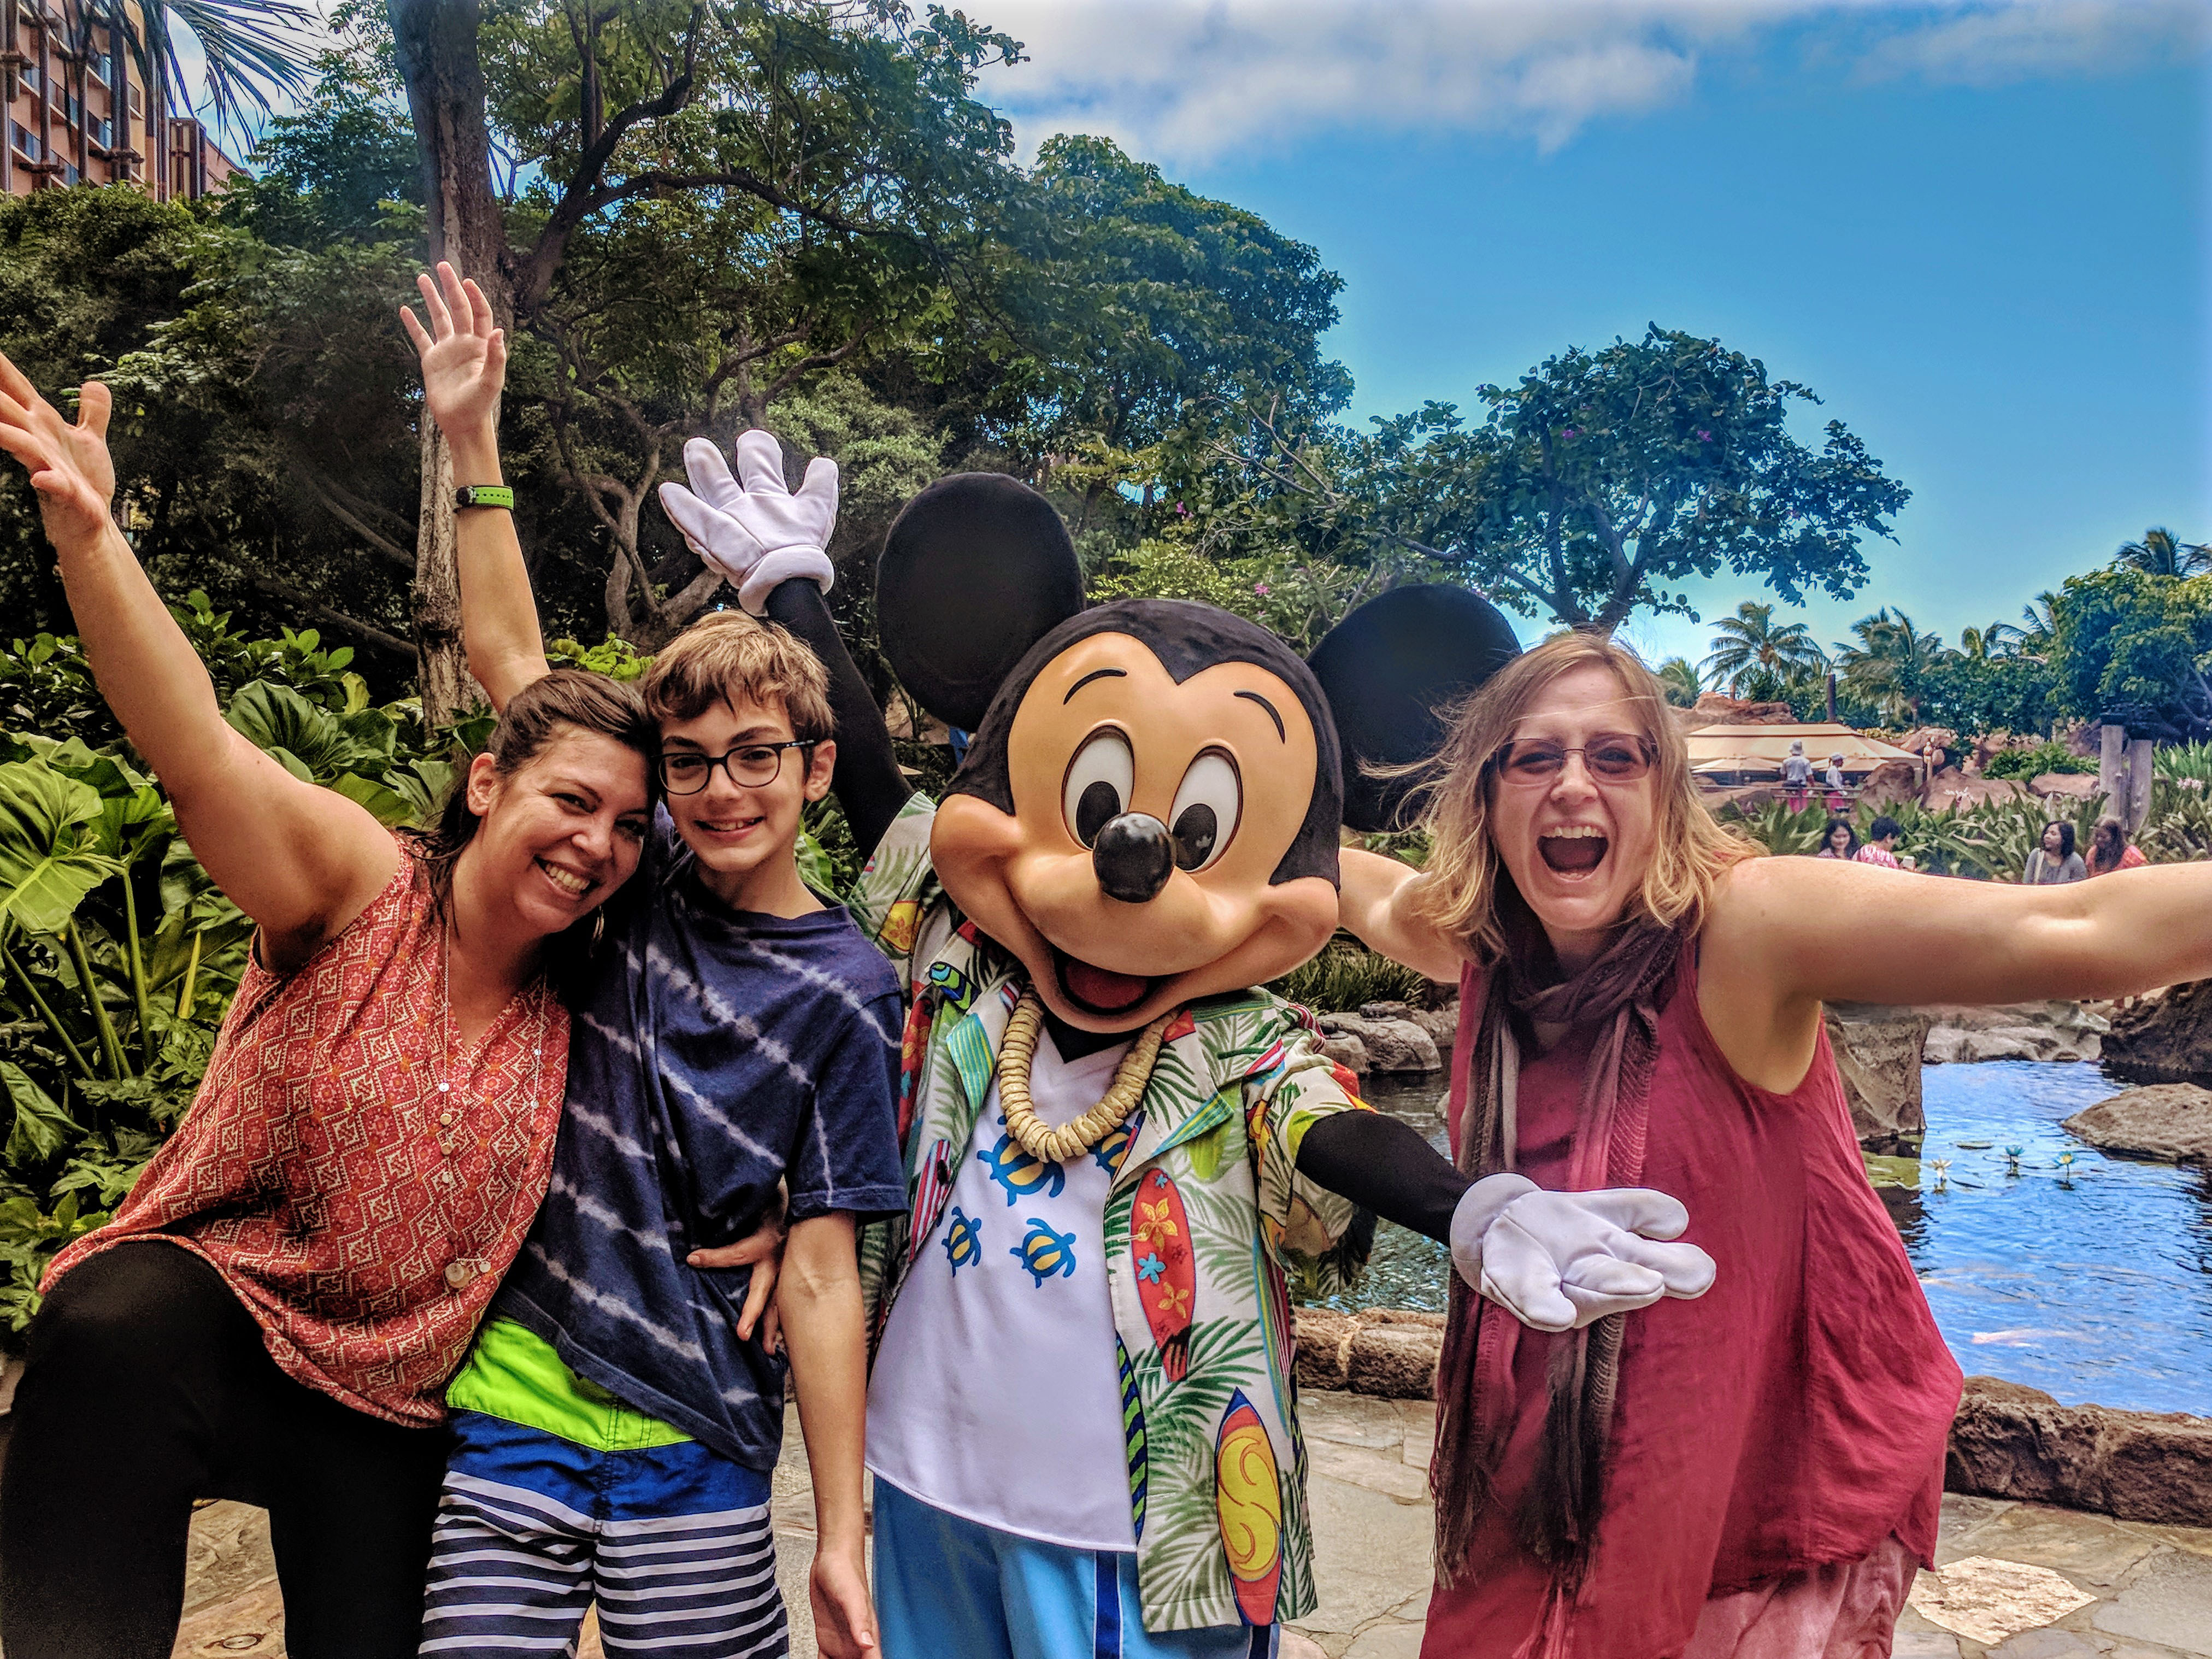 Dont Visit Disneys Aulani Resort In Hawaii Without Reading This